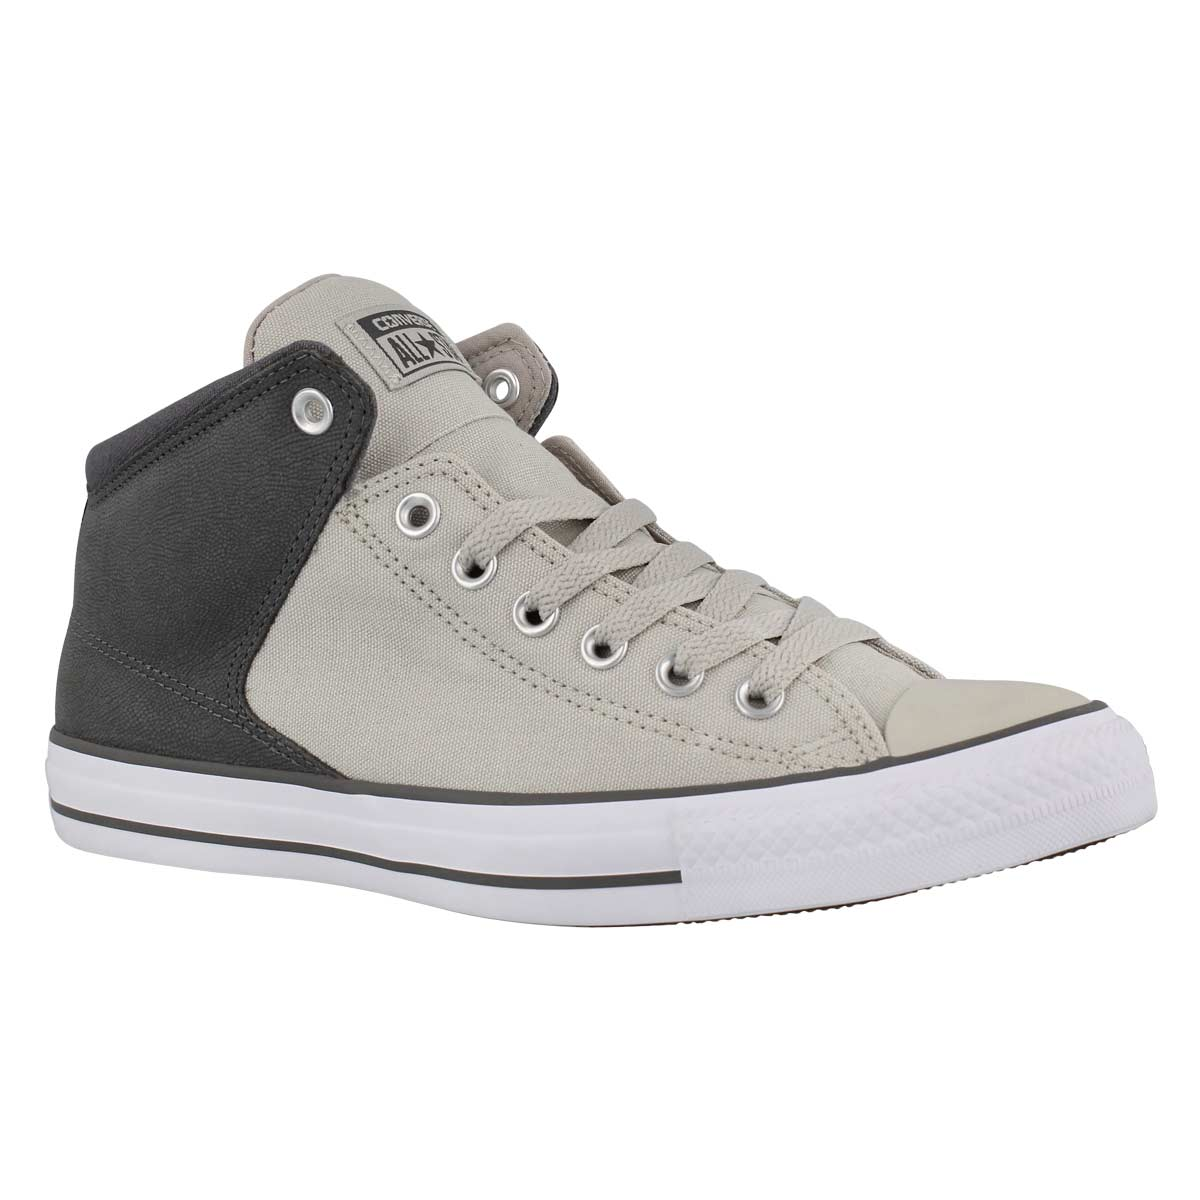 Men's CT ALL STAR HIGH STREET pale grey sneakers